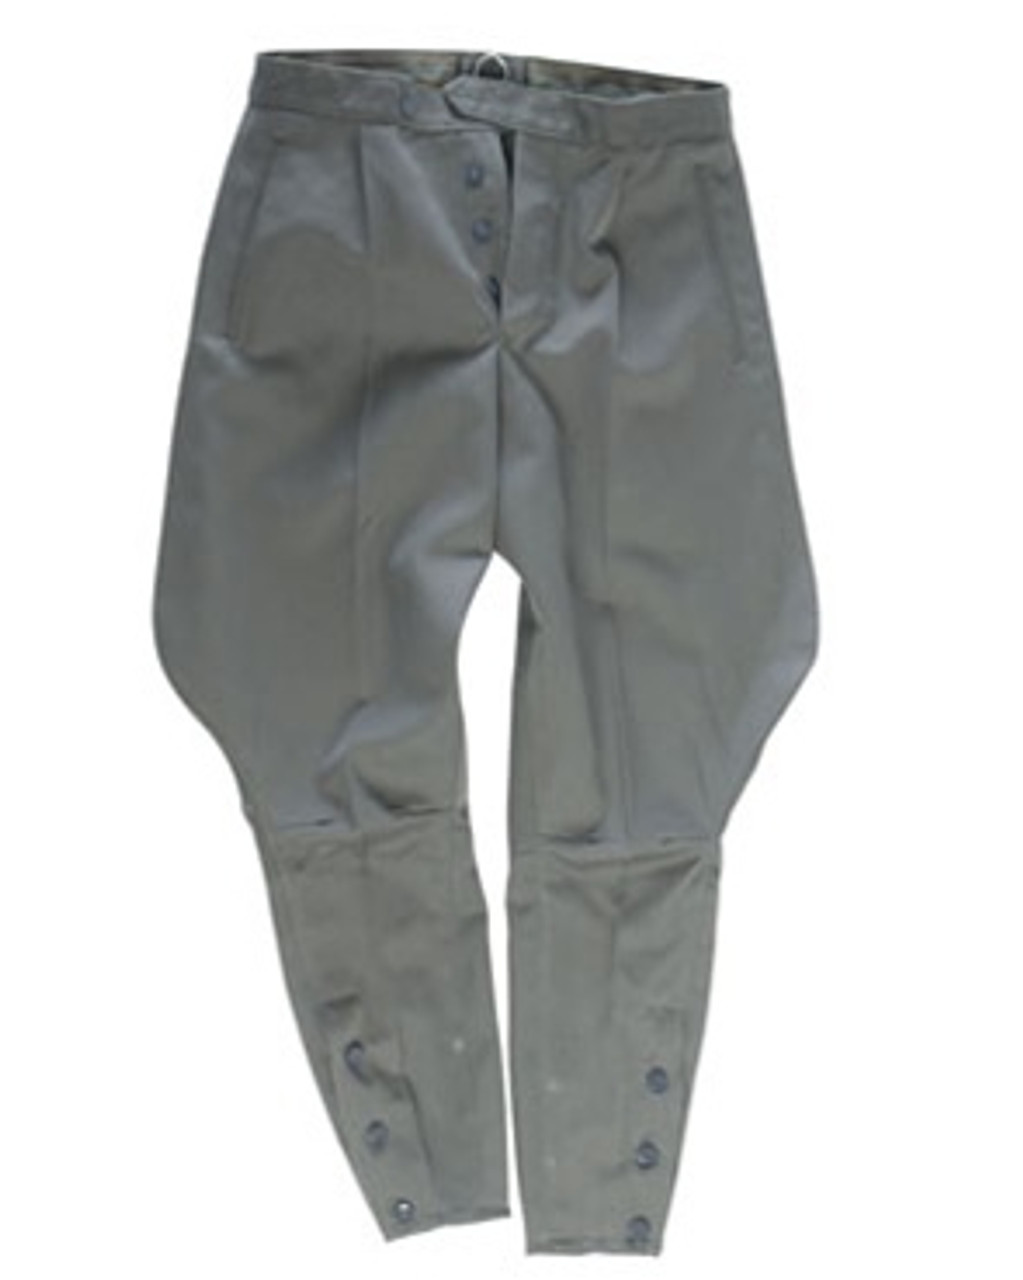 East German Grey Breeches from Hessen Surplus